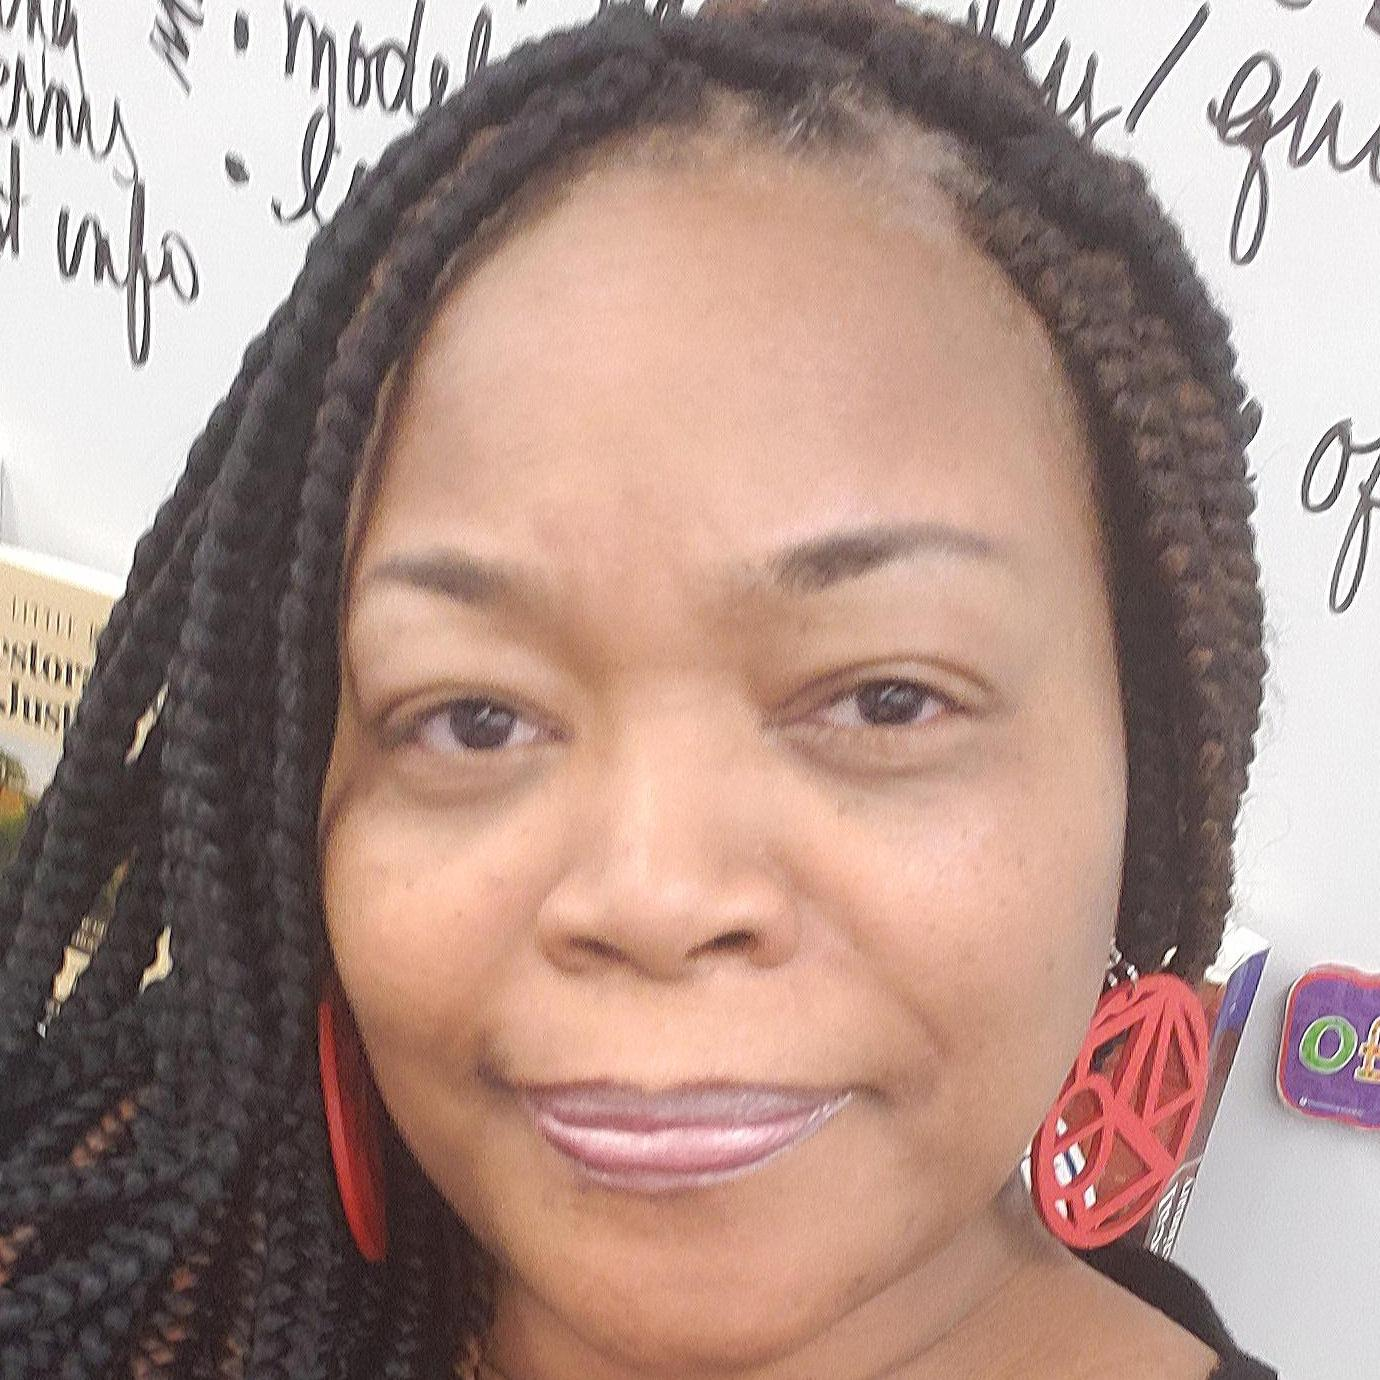 Ruby Sheree Parnell-Booth's Profile Photo